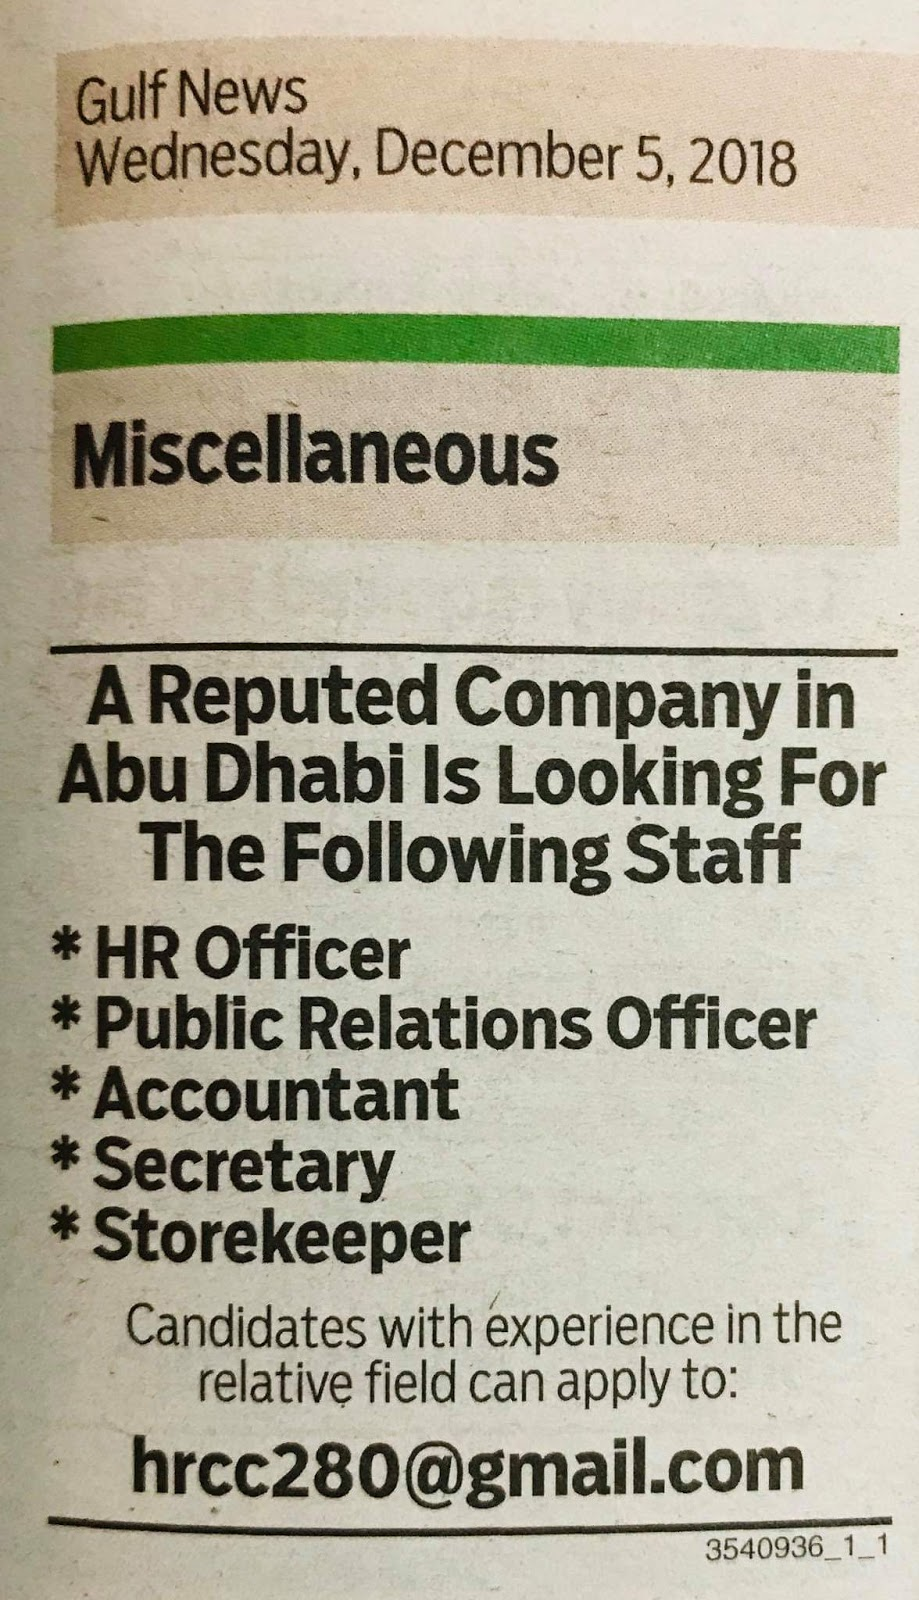 A Reputed Company Looking HR Officer,Public Relations